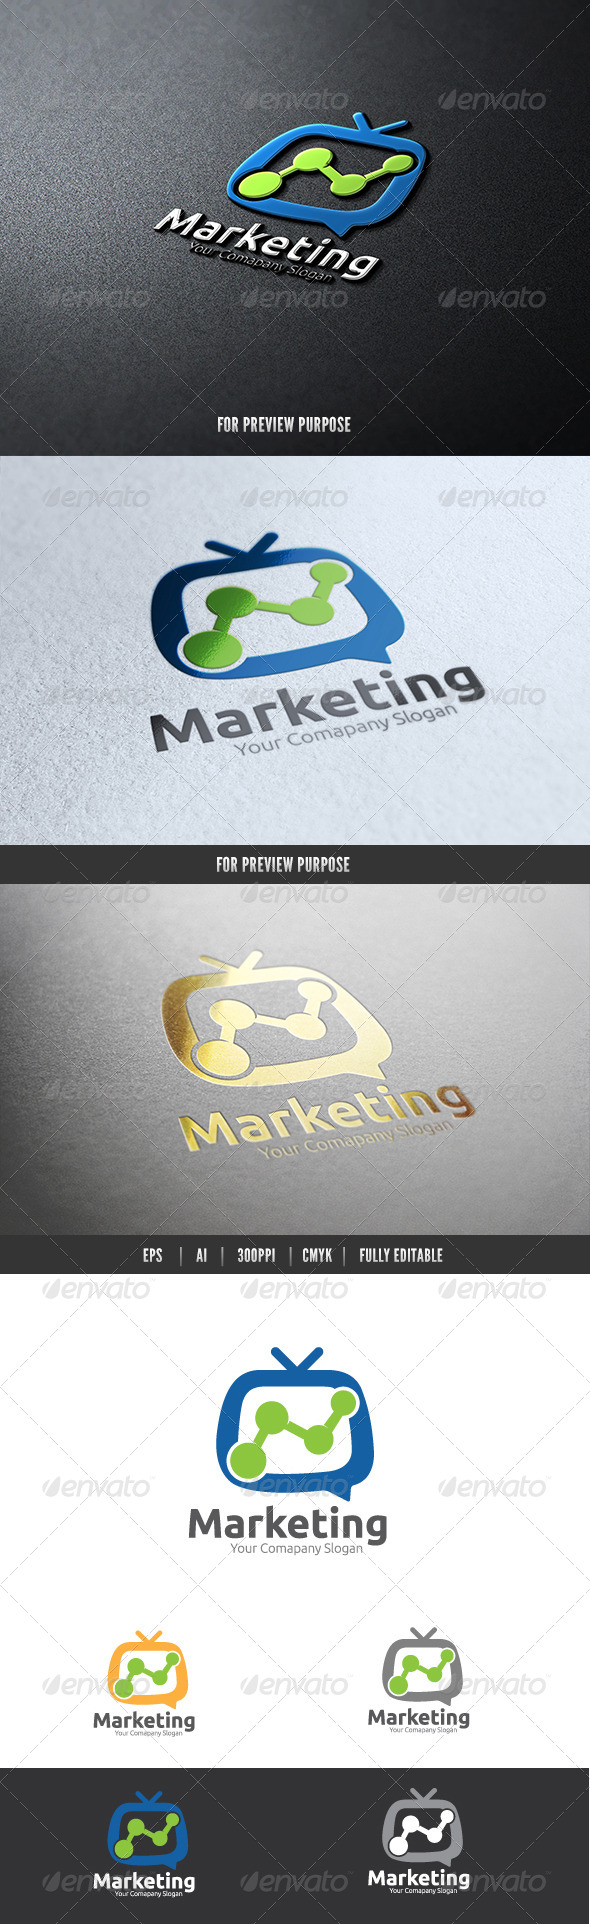 GraphicRiver Marketing II 7598371